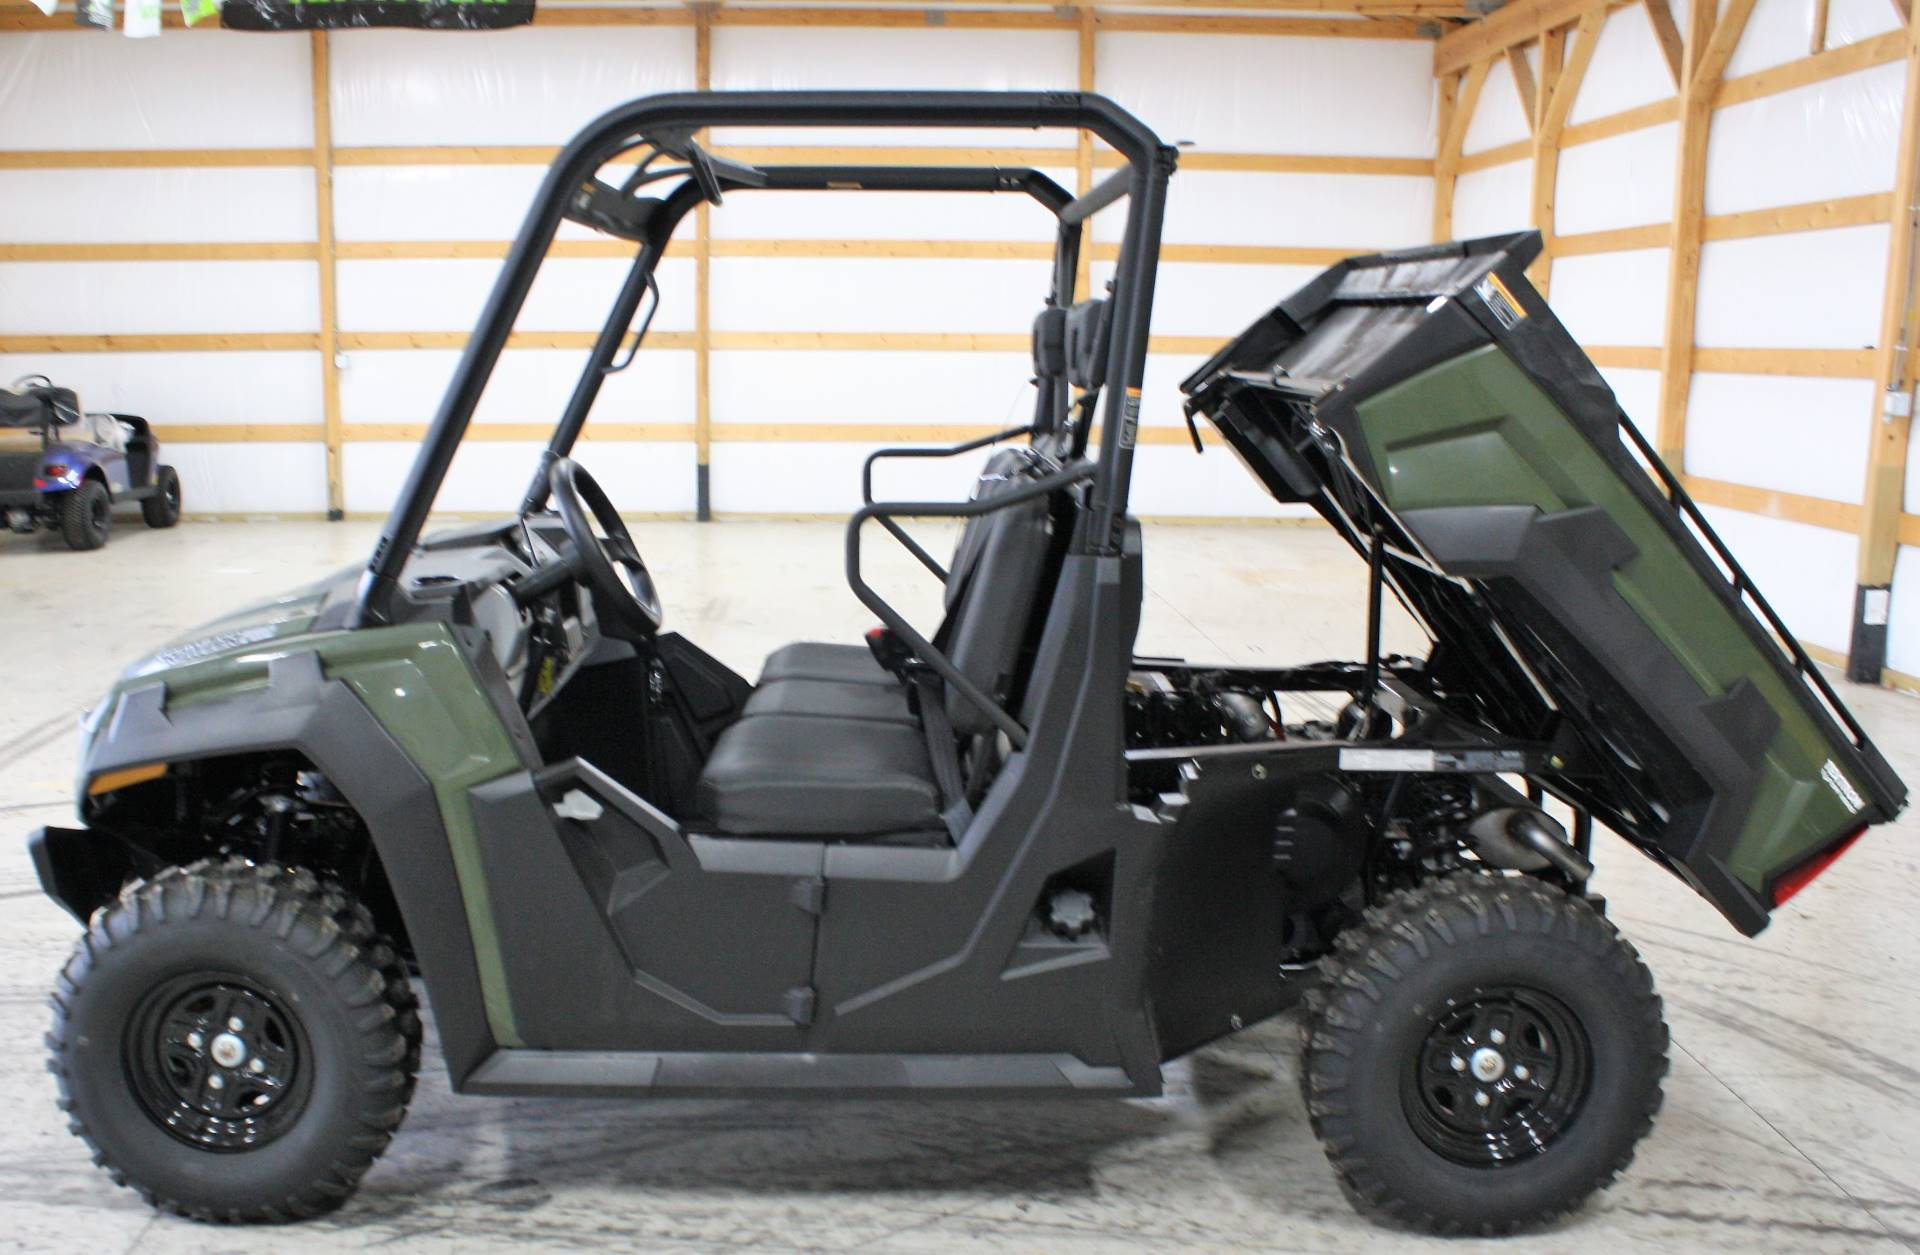 2019 Textron Prowler Pro in Campbellsville, Kentucky